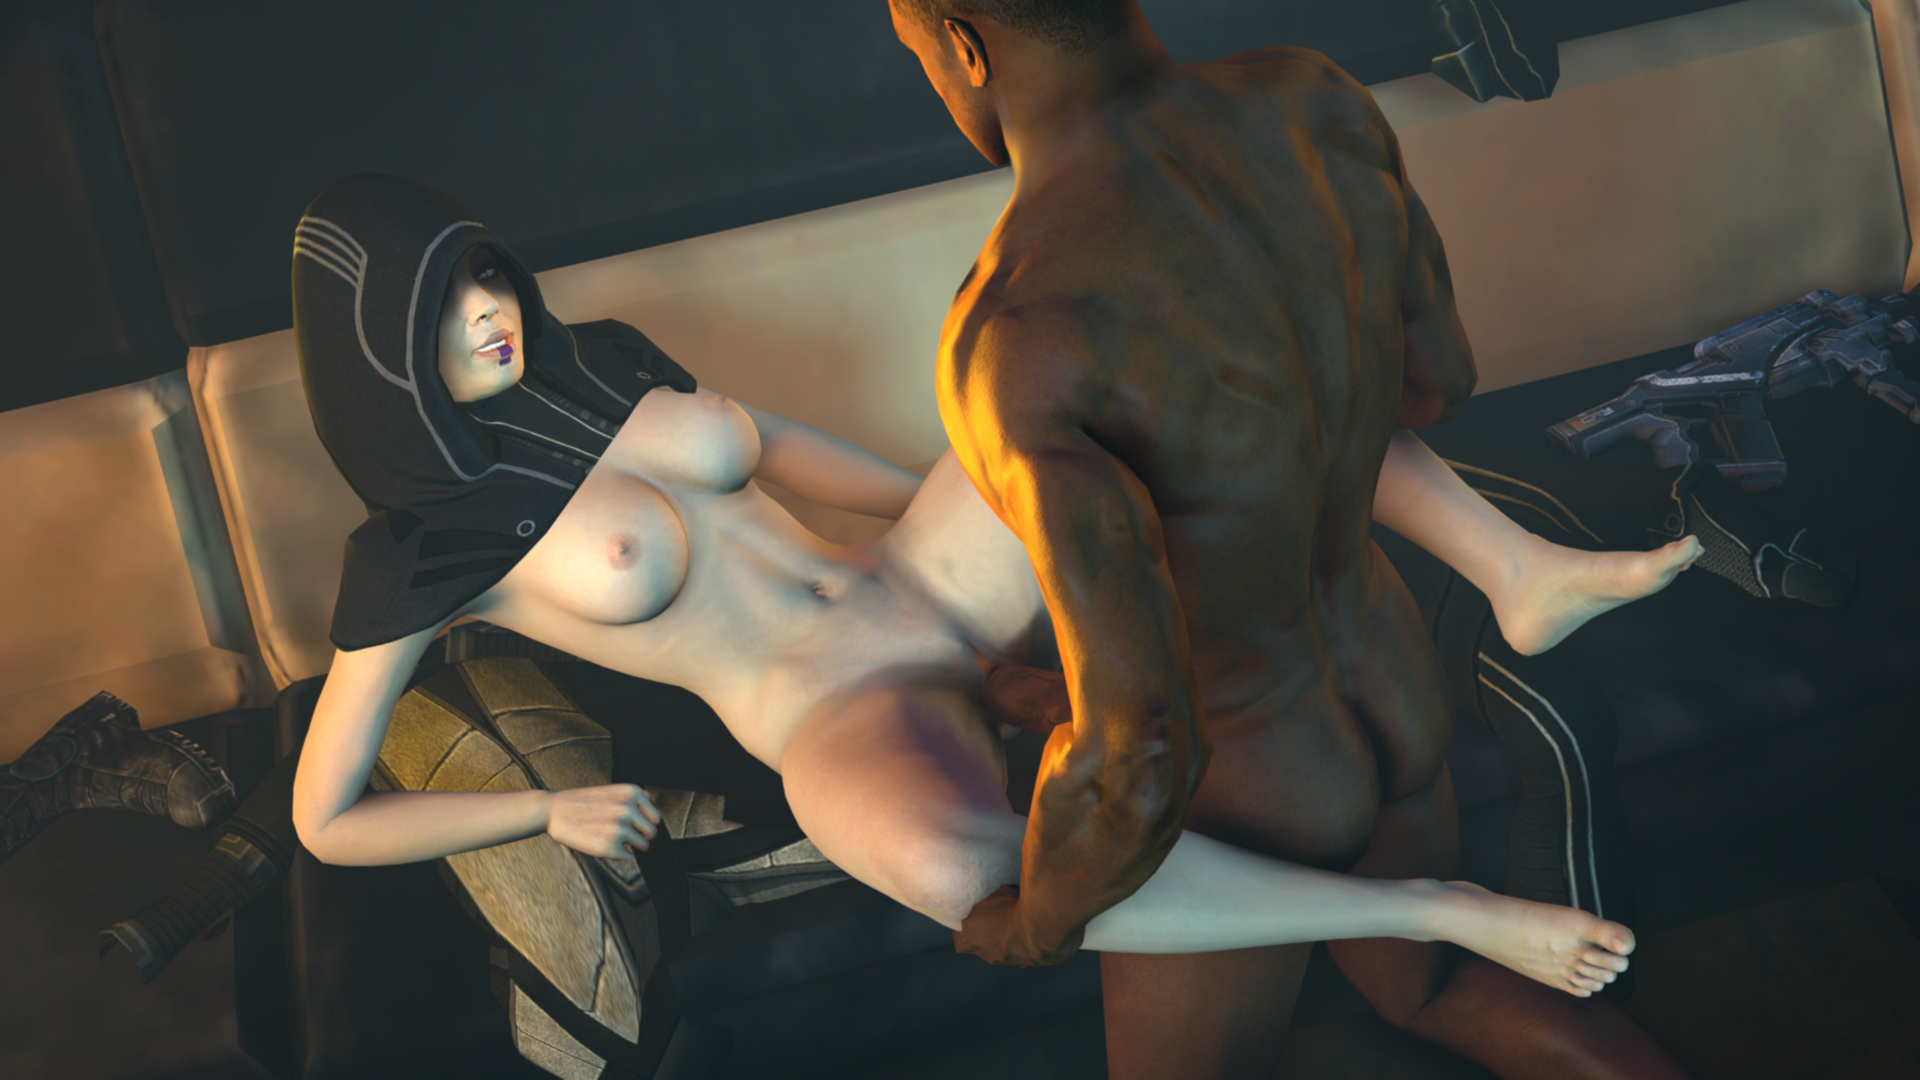 Masseffect 2 nude mod nackt download